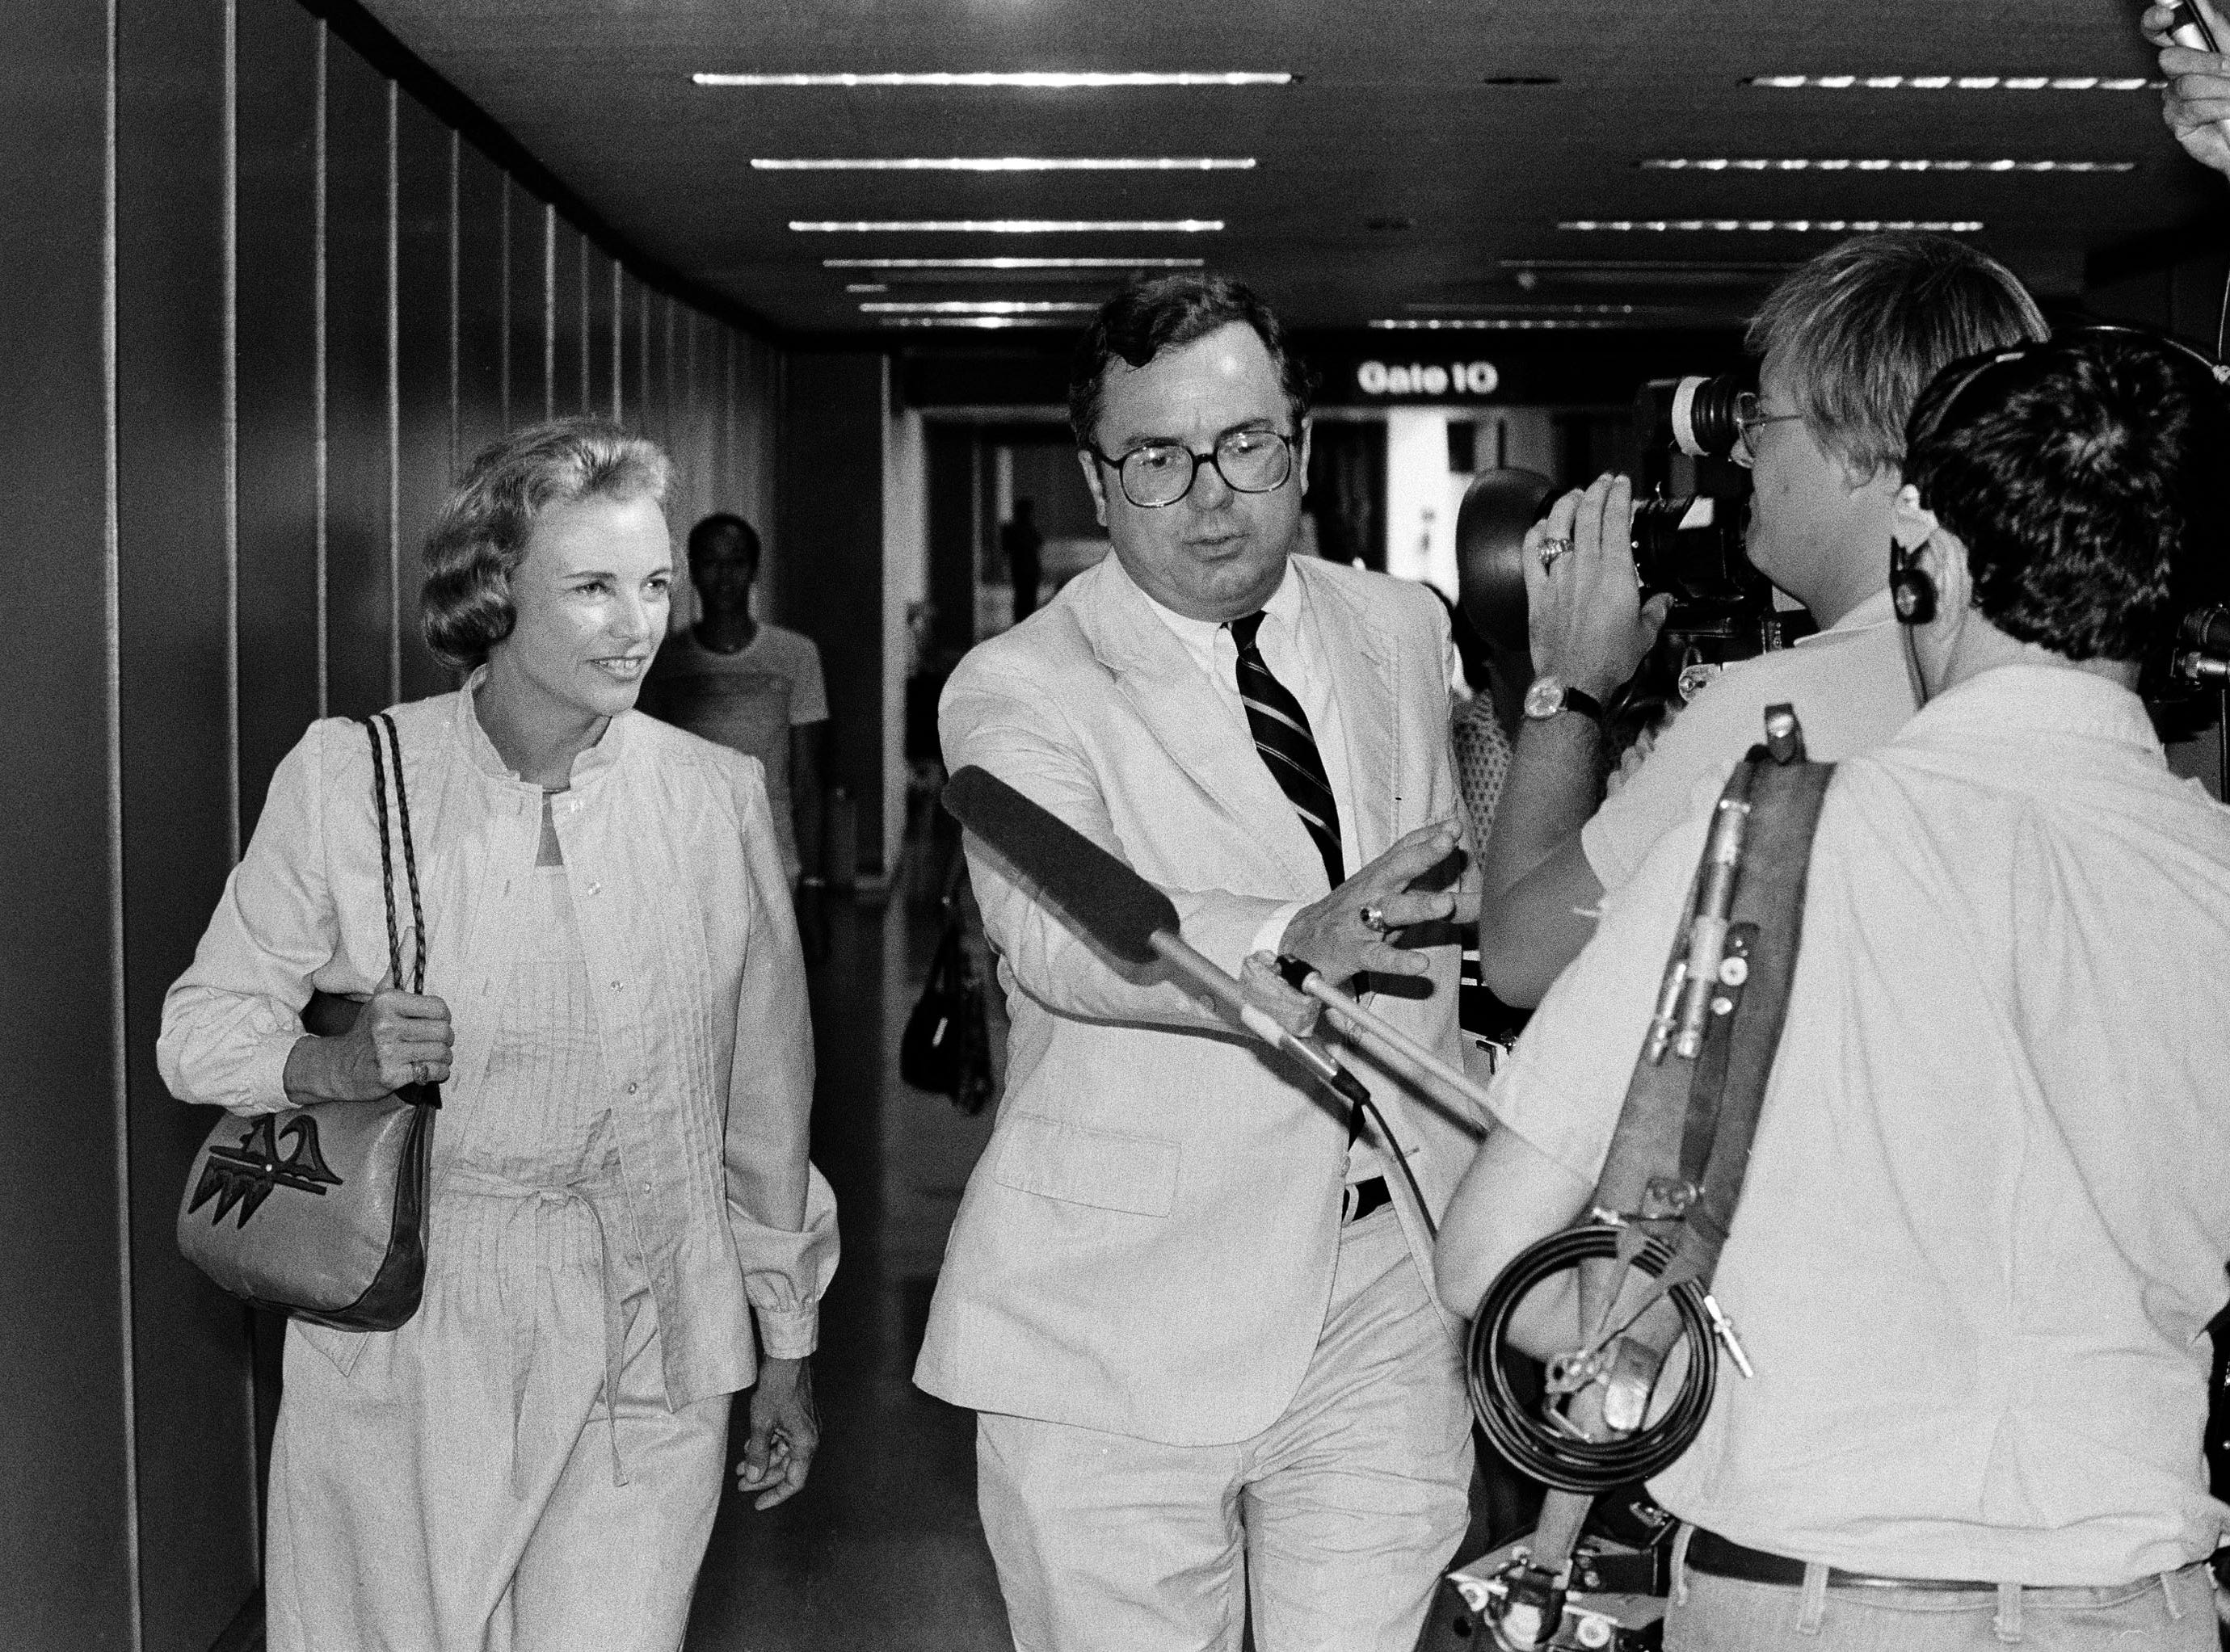 A unidentified White House aide clears a path through cameramen for Supreme Court nominee Sandra Day O'Connor, left, on her arrival at Washington National Airport, July 13, 1981.